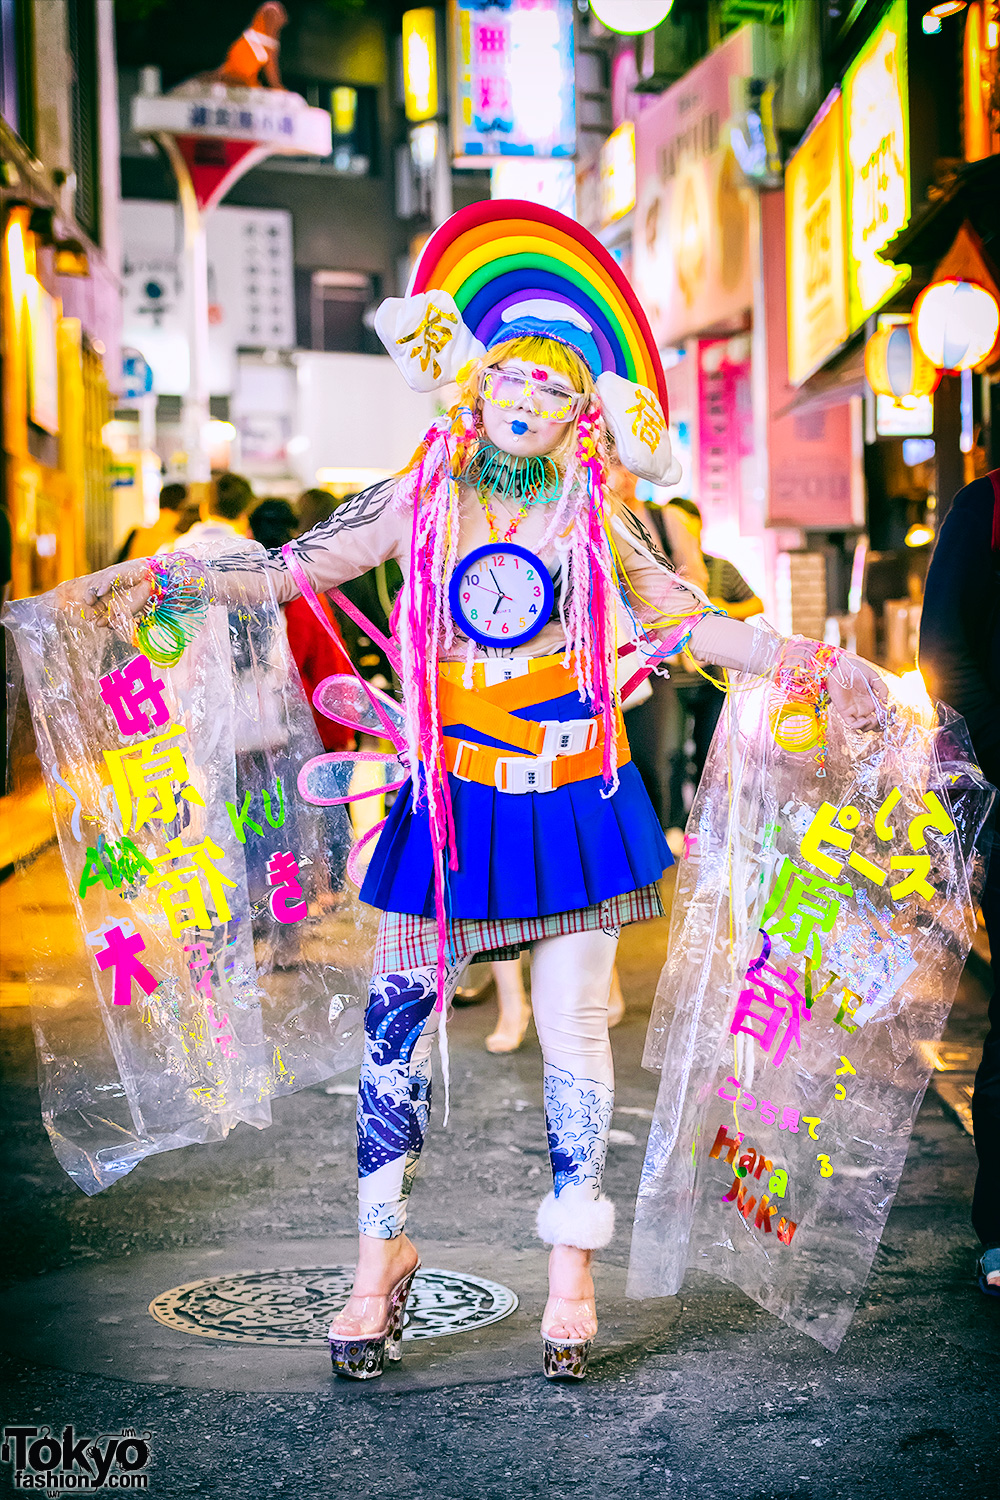 Harajuku Girl Wearing Colorful Handmade Amp Remake Fashion